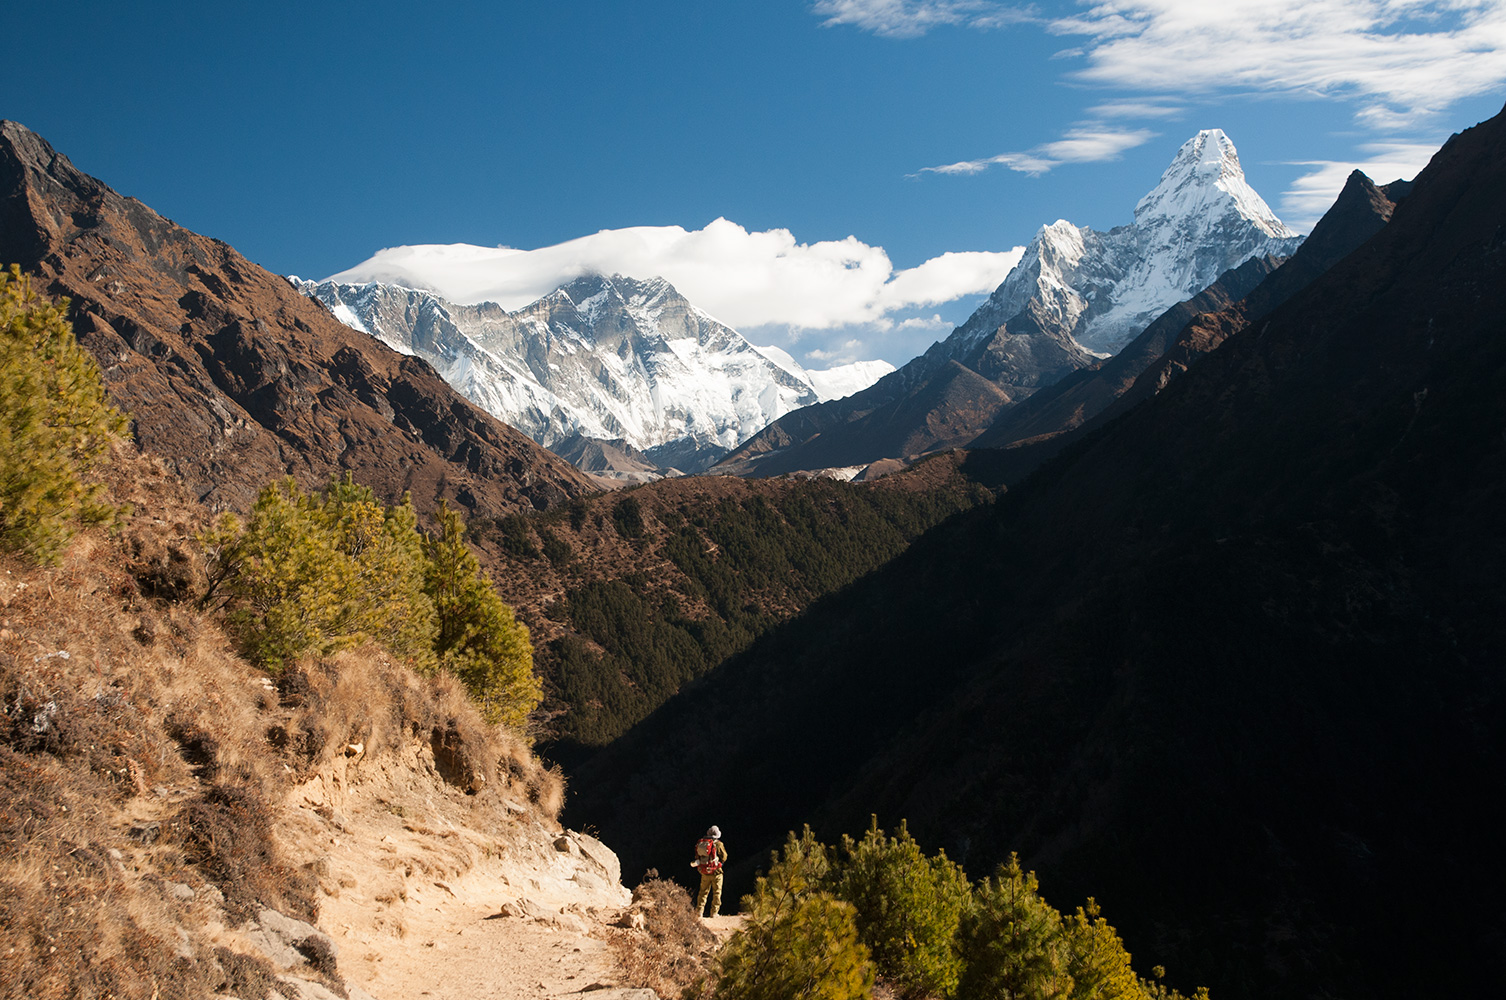 CK Ho of the Hong Kong Emerald Hiking Team pauses to take a final look at the high peaks of the Khumbu before the trail turns and dives back to Namche Bazaar at the end of our trek to Everest Base Camp in December 2008Nikon D300, 17-35mm